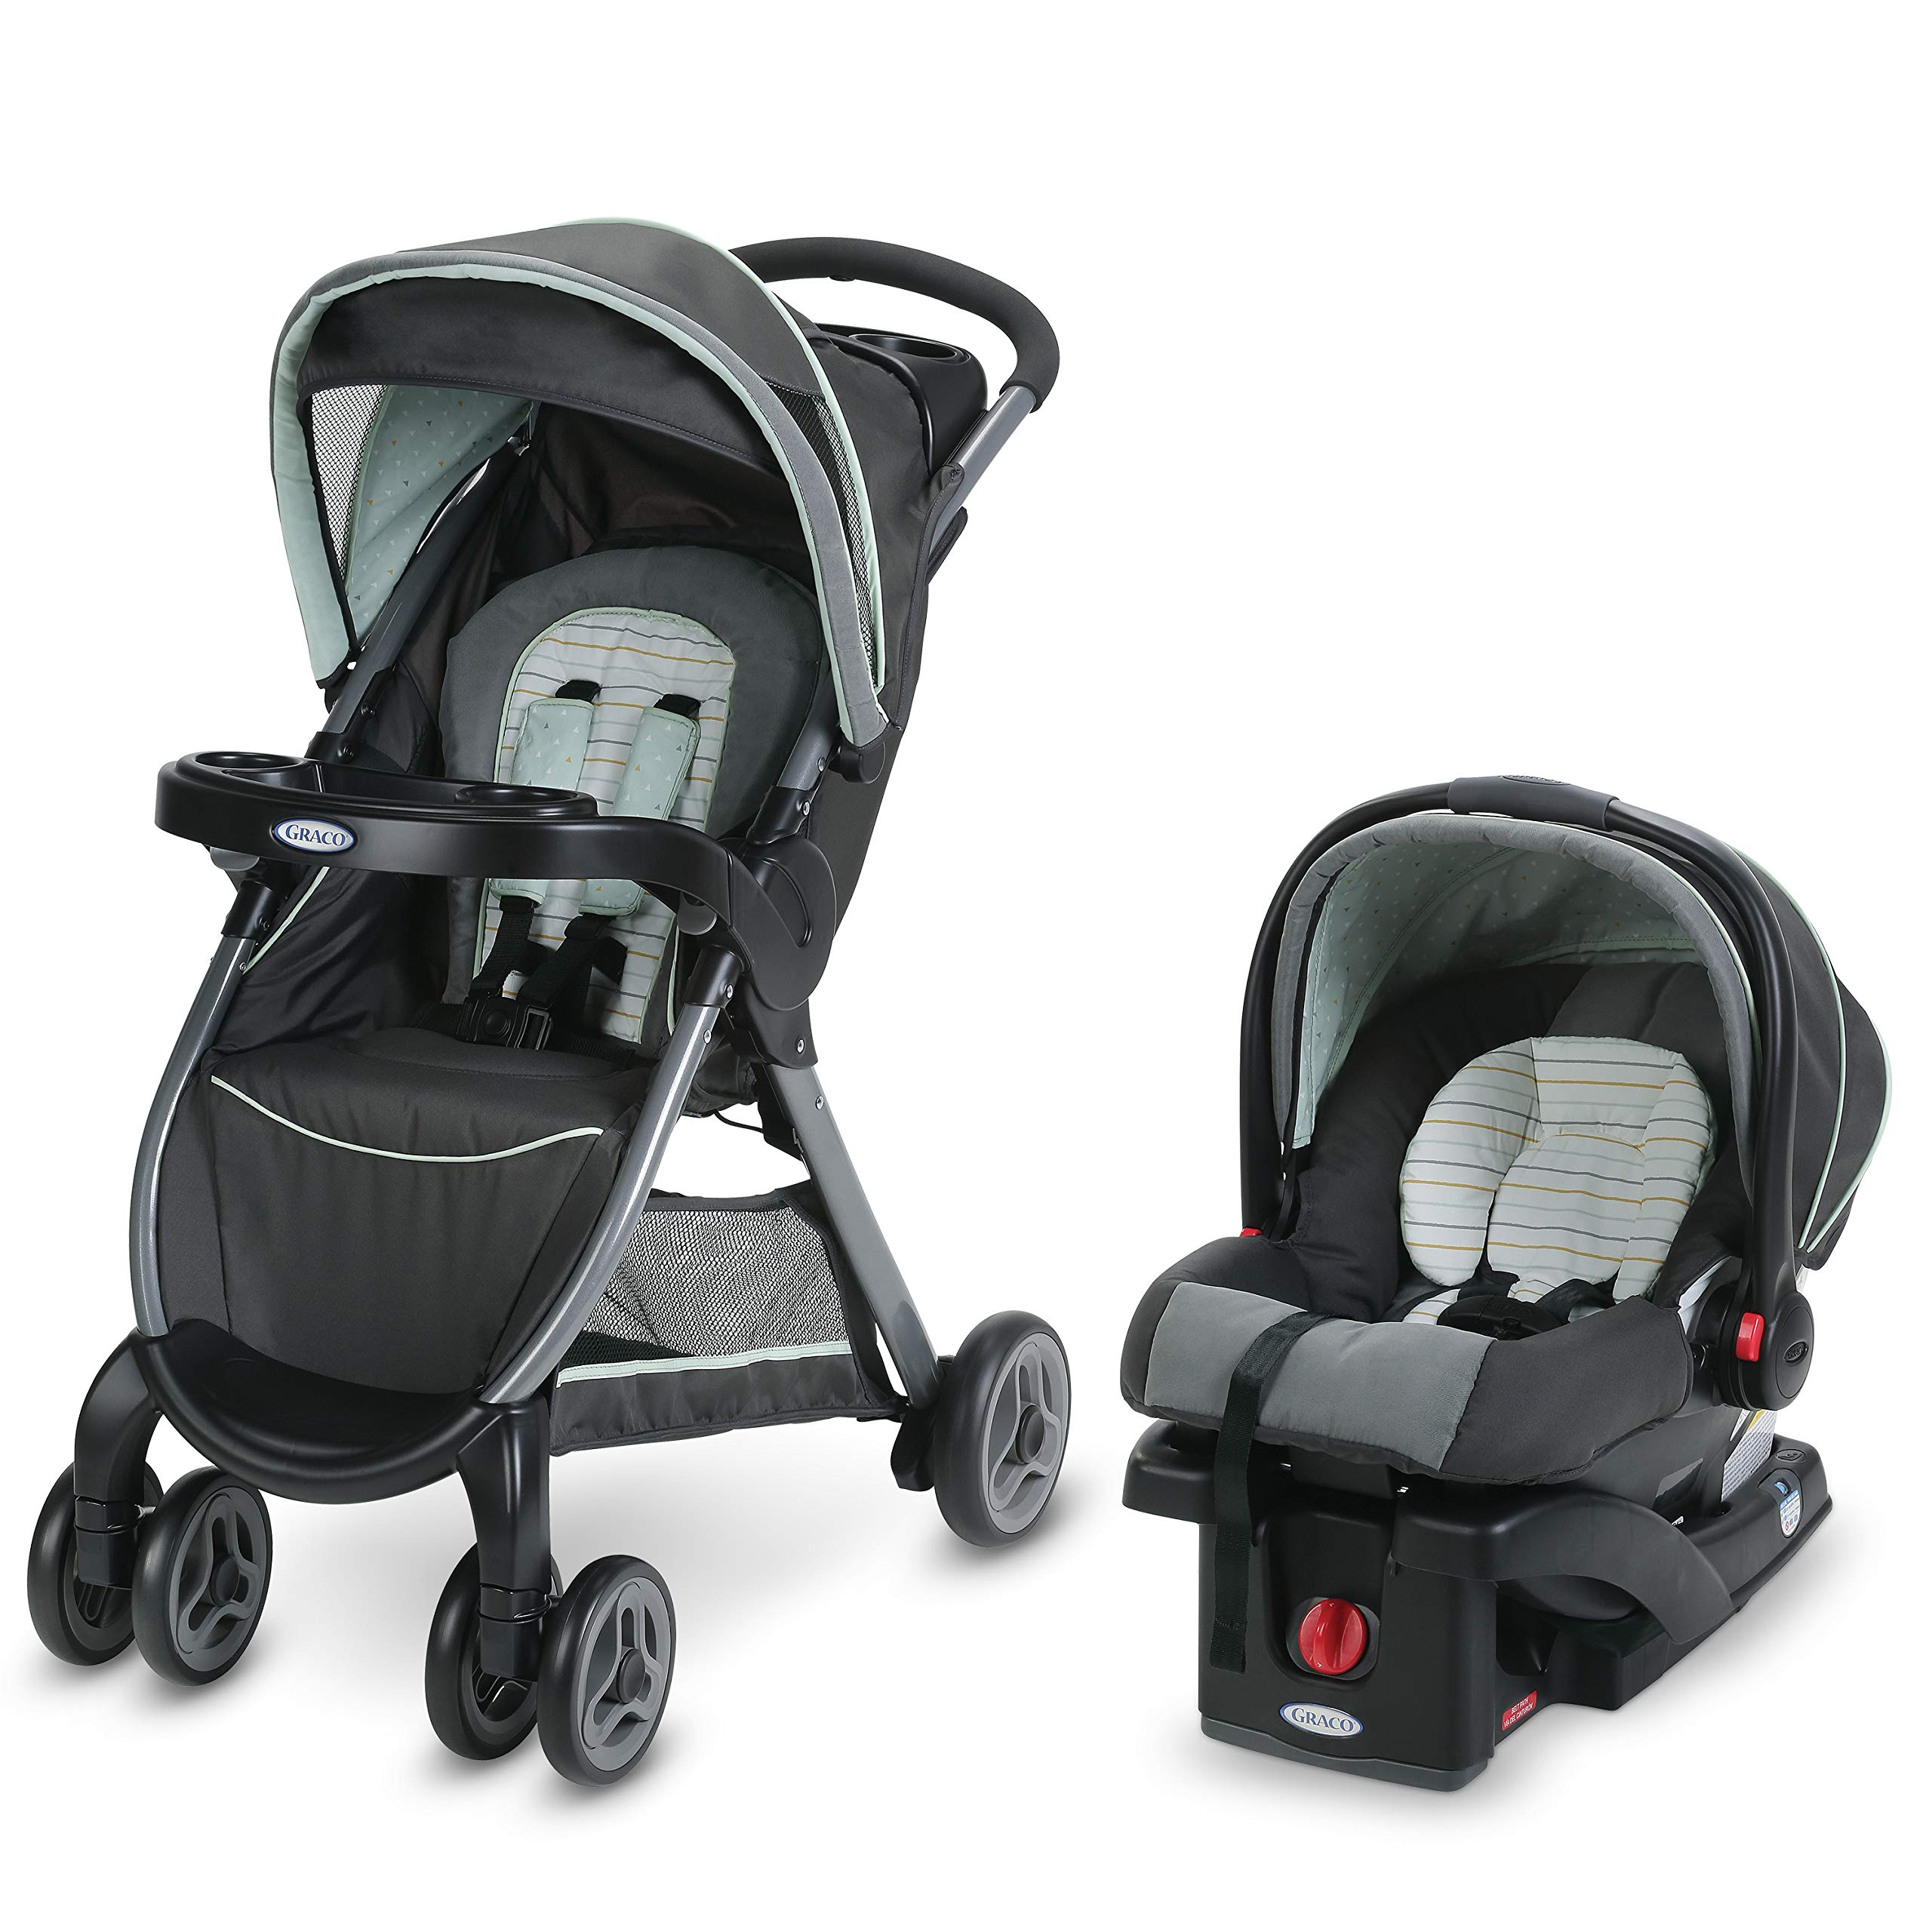 Graco FastAction Fold Travel System | Includes FastAction Fold Stroller and SnugRide 30 Infant Car Seat, Bennett by Graco